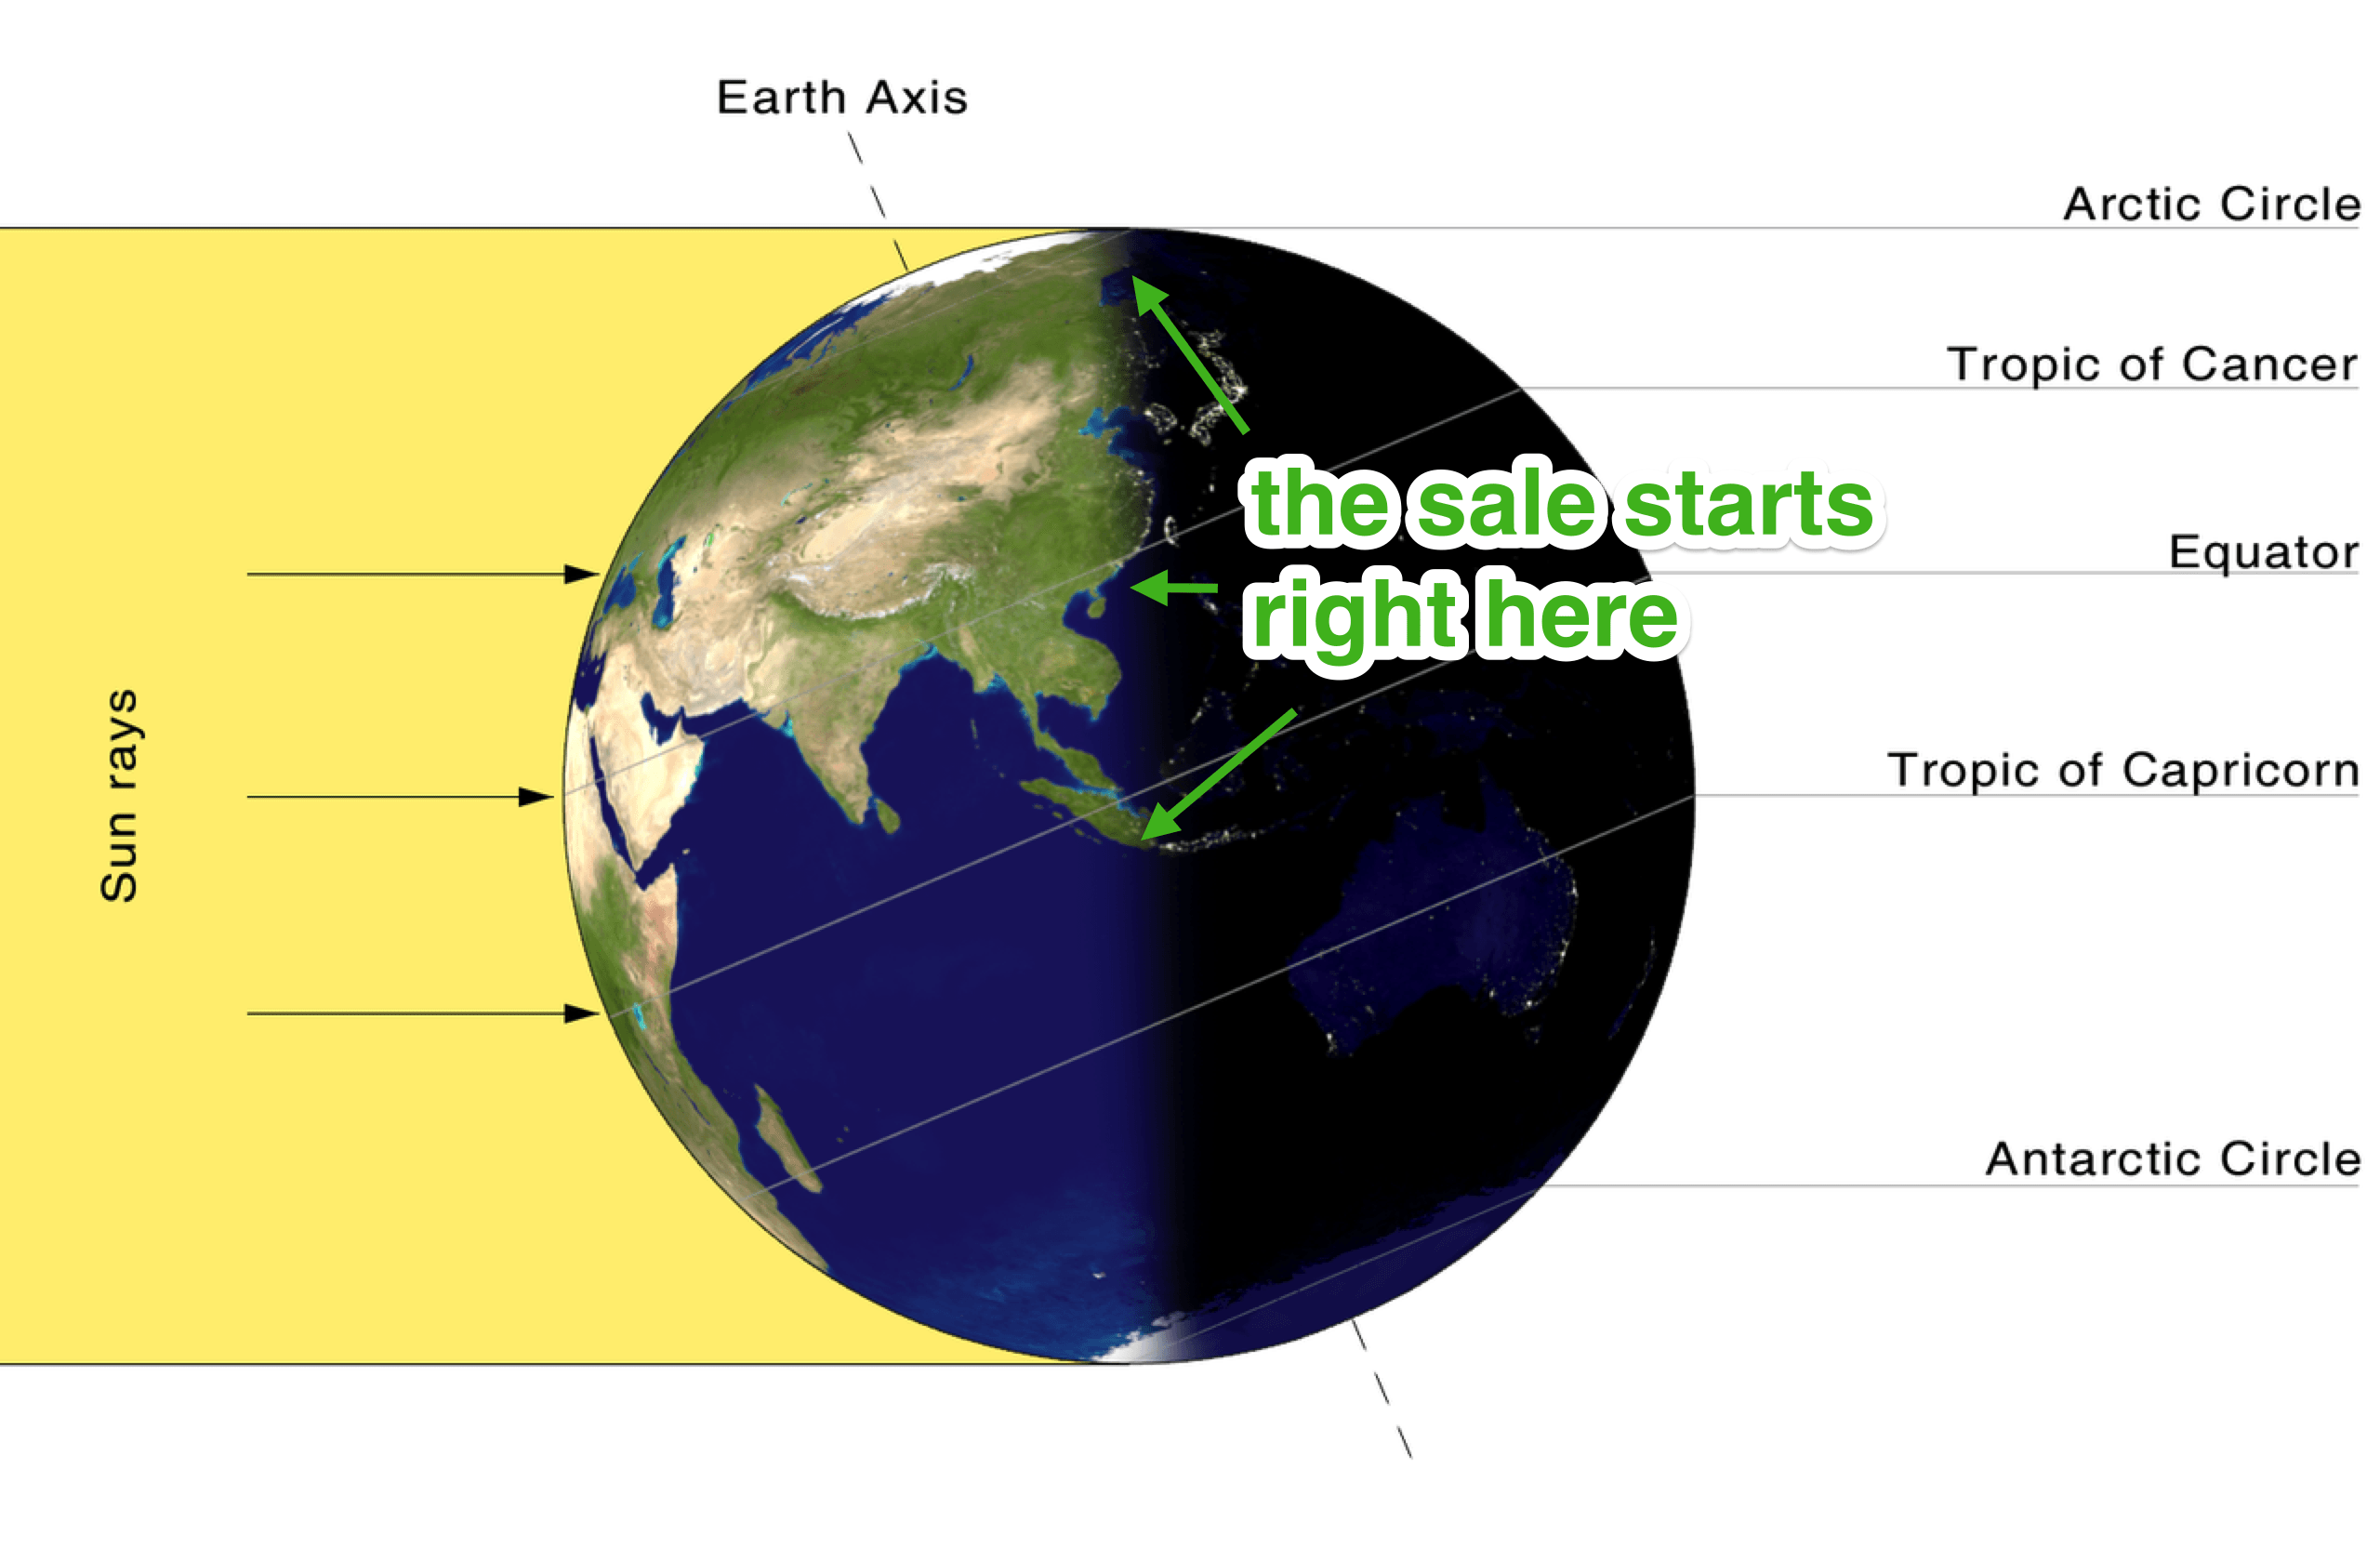 Image showing the globe with day and night dividing it in two, sun rays coming from the left, and the earth's axis coming in on diagonal.